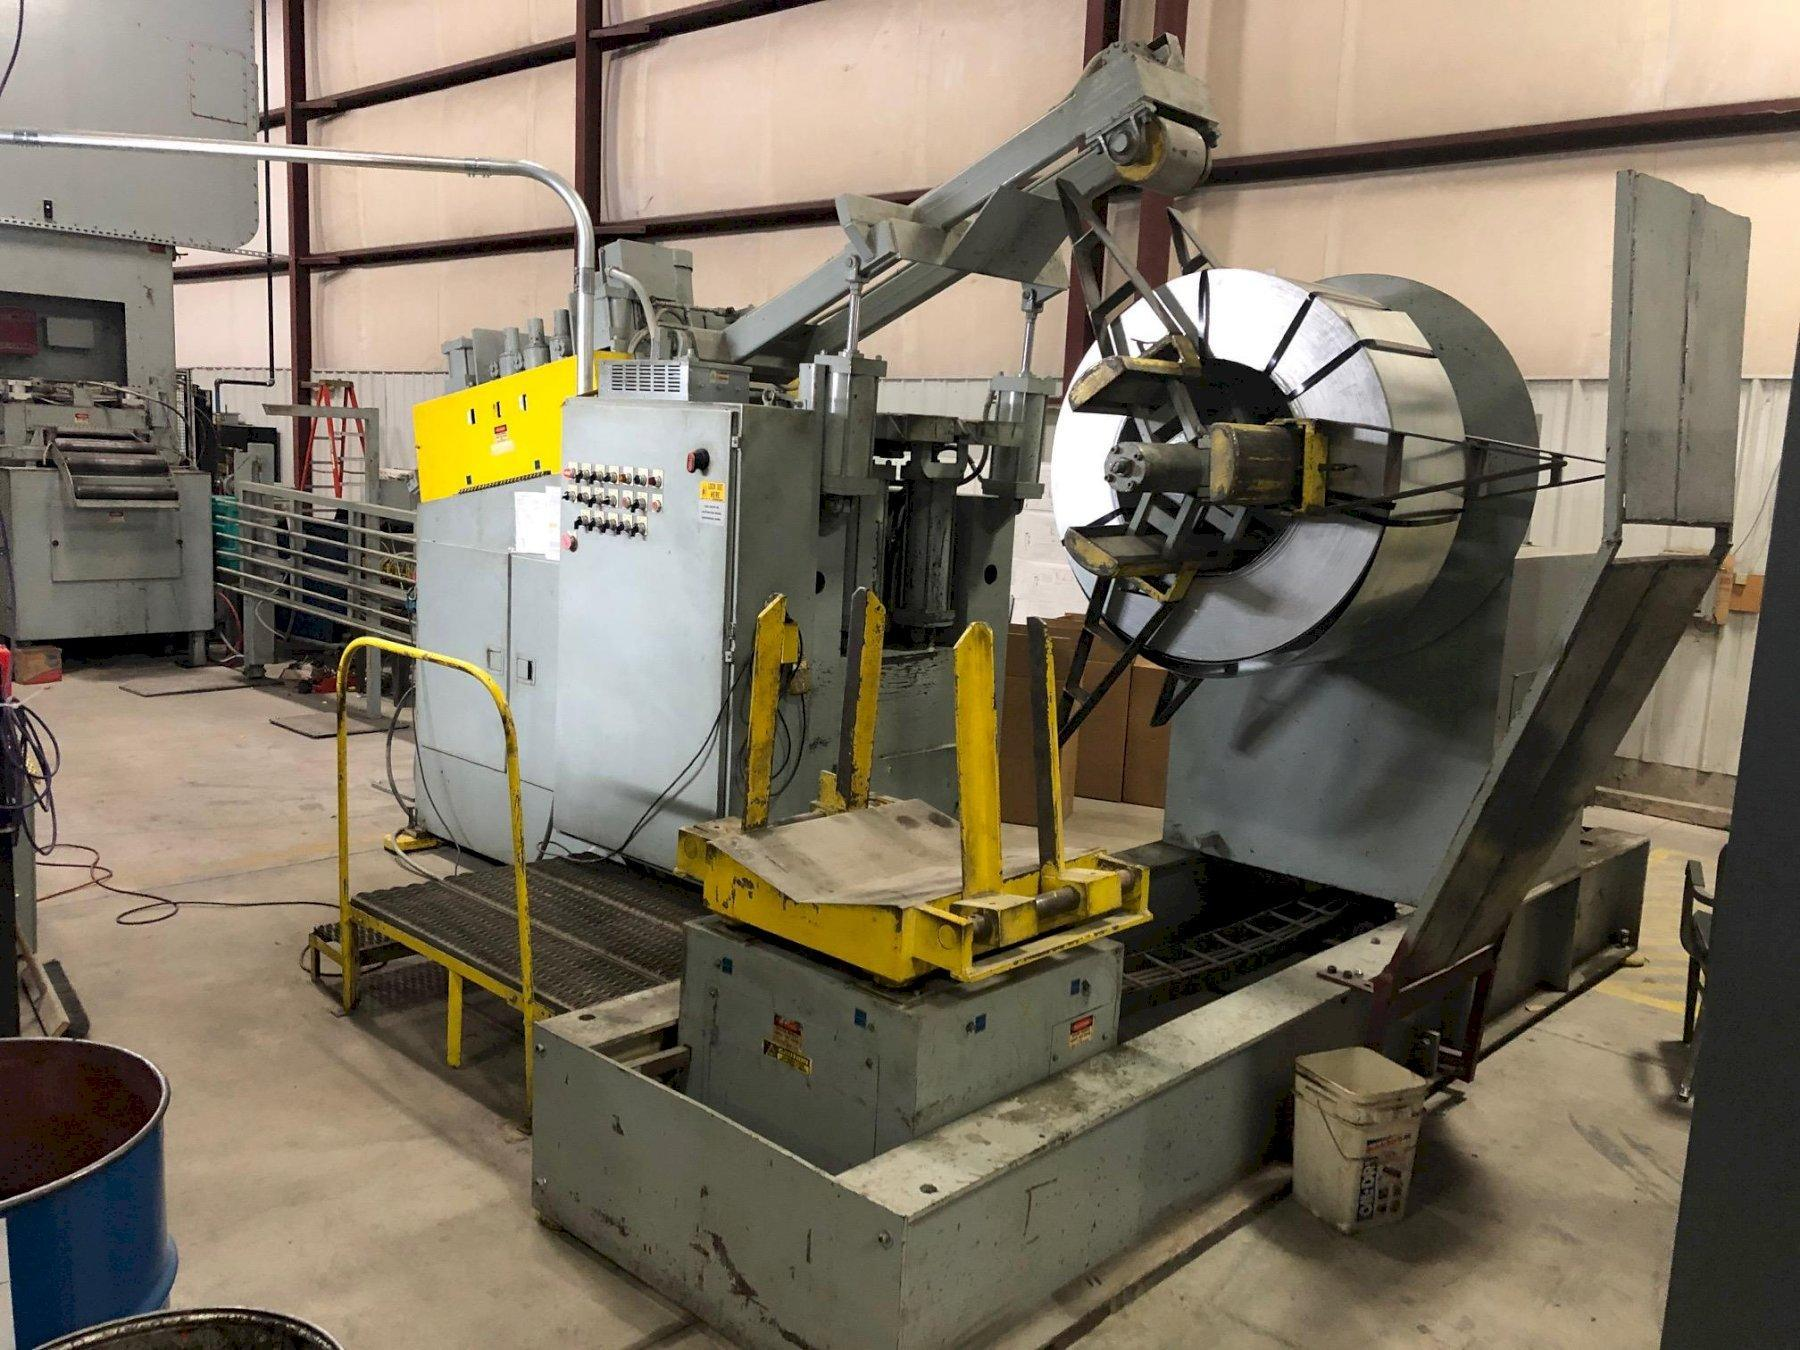 Air Feeds Inc. Coil Reel Uncoiler and Powered Coil Straightener 10,000 Lbs.